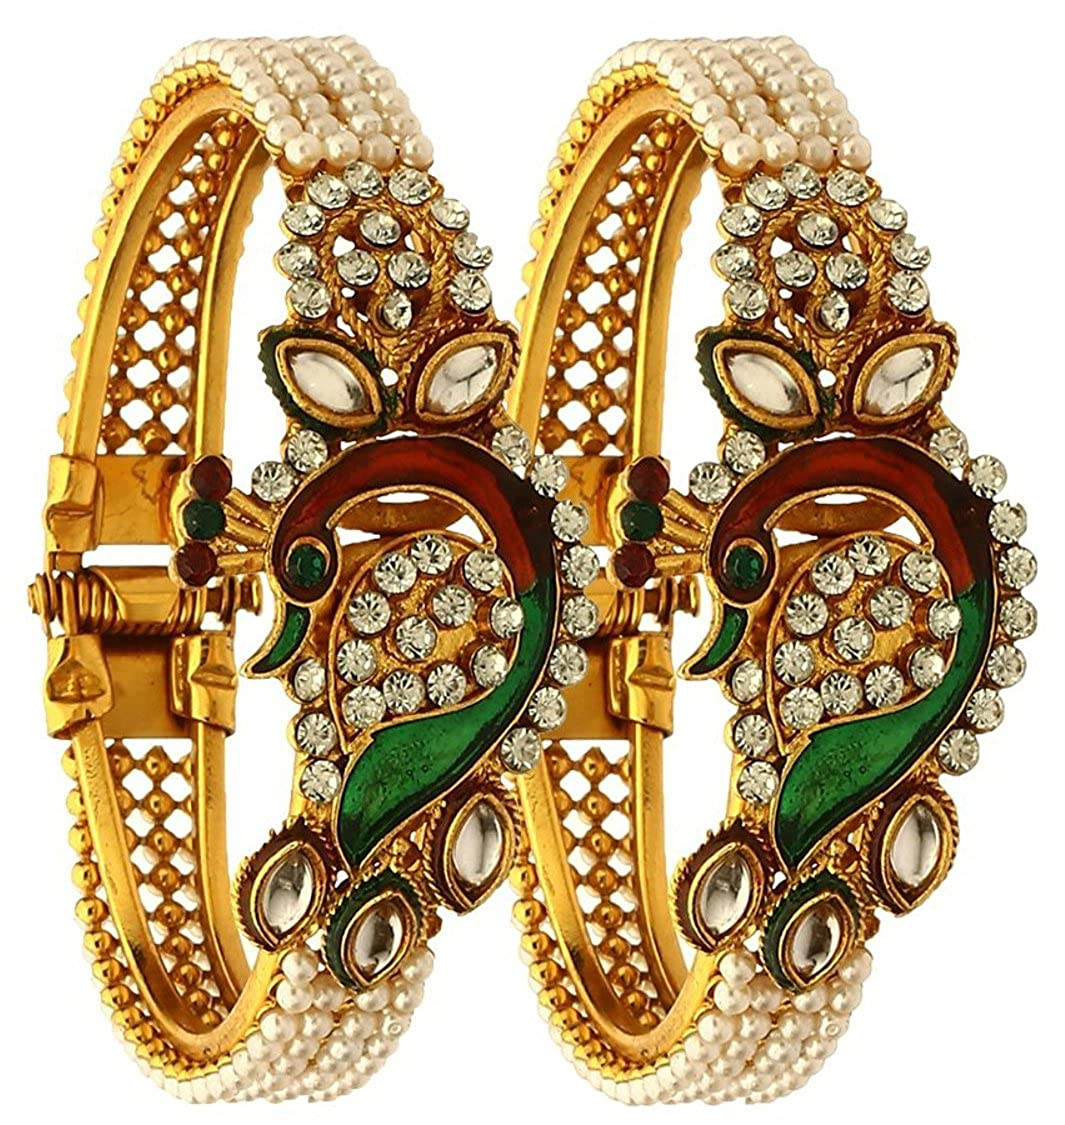 YouBella Gold Plated Cuff for Women (Multi-Colour)(YBBN_91301)